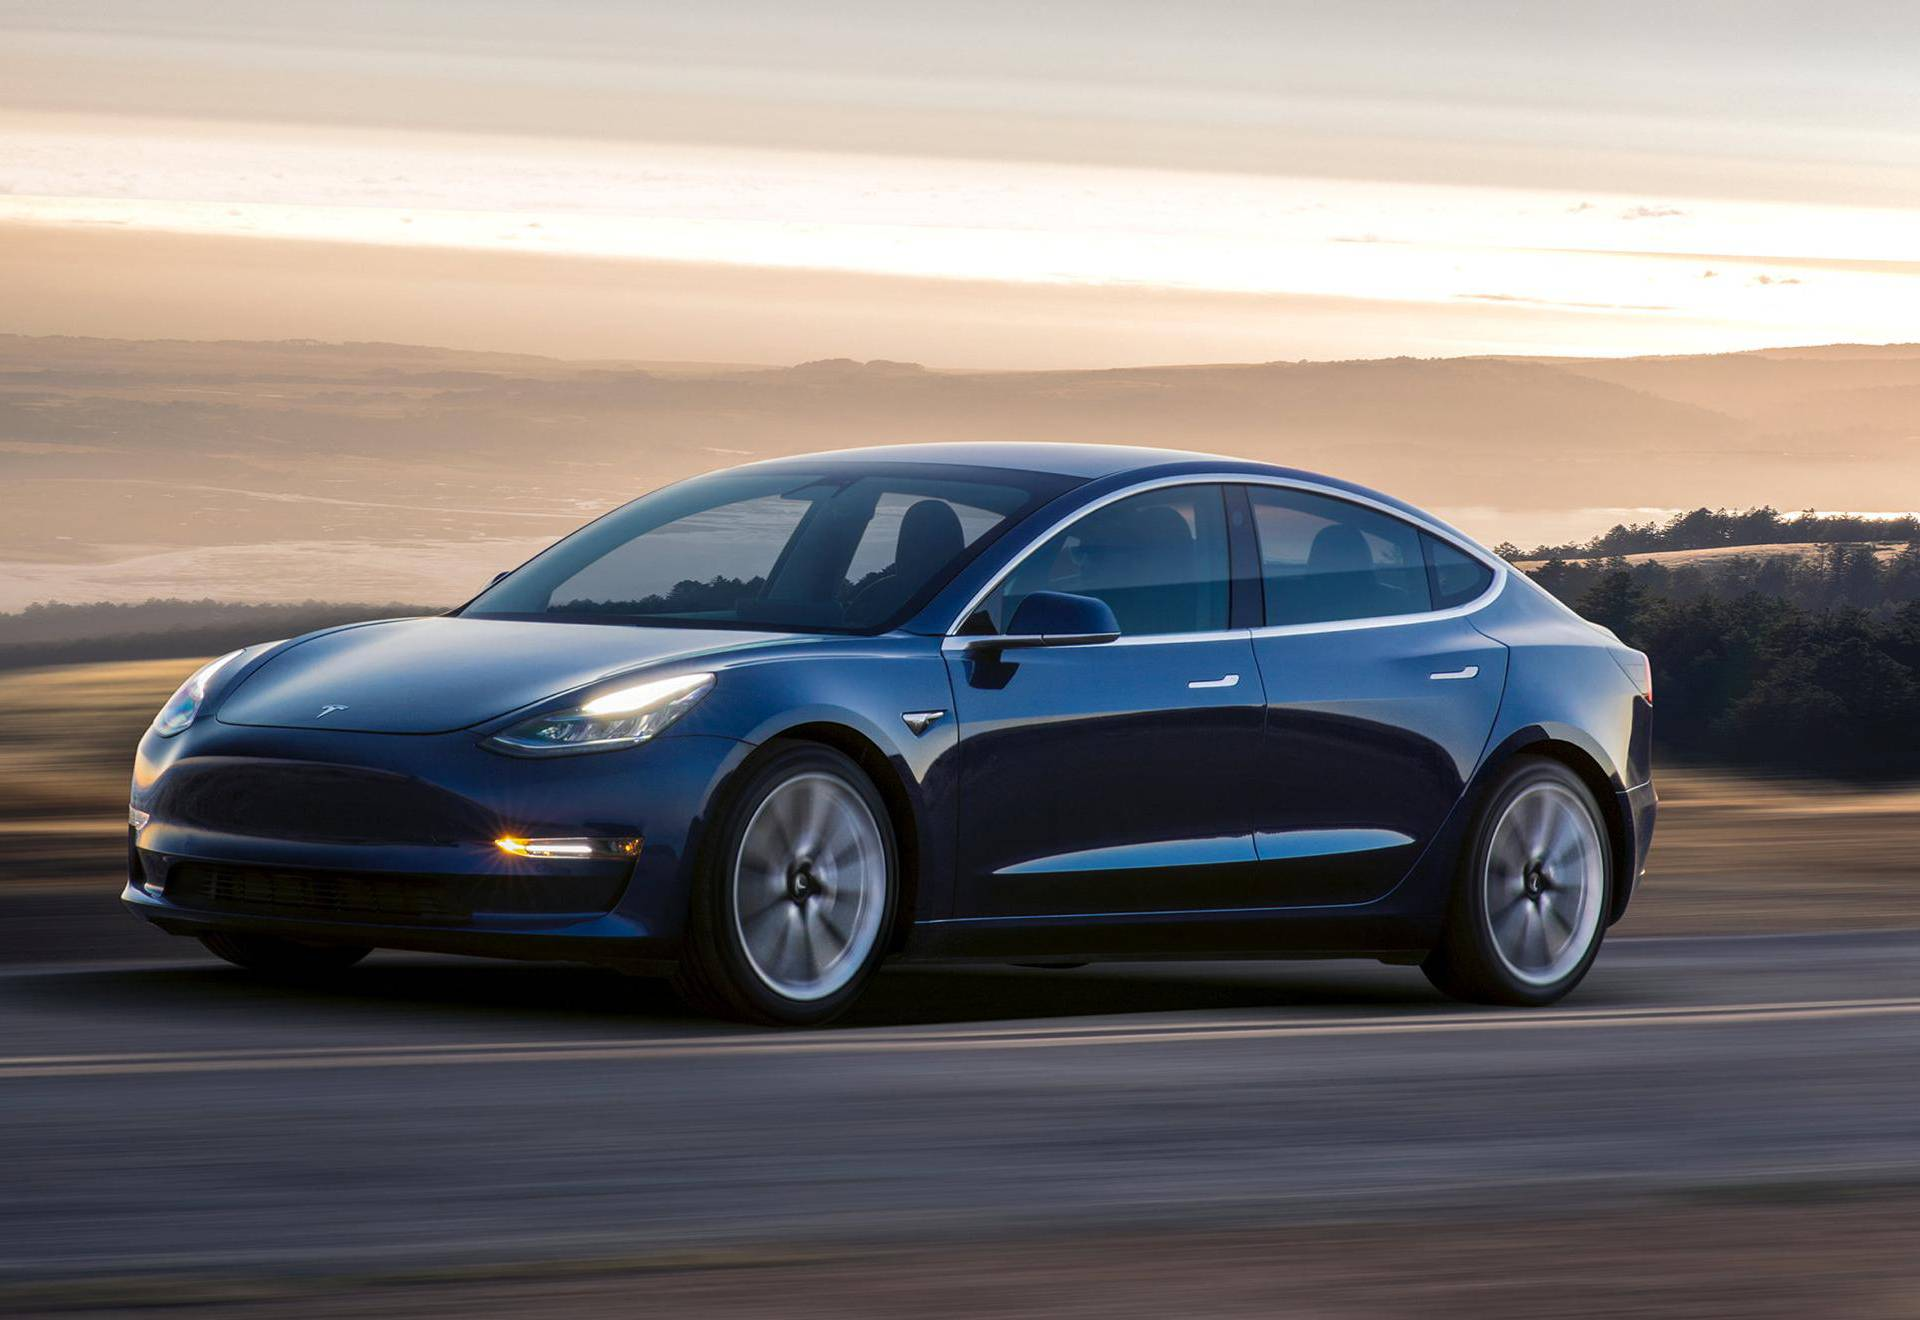 A Tesla Model 3 sedan is seen in this undated handout image as the car company handed over its first 30 Model 3 vehicles to employee buyers at the company's Fremont facility